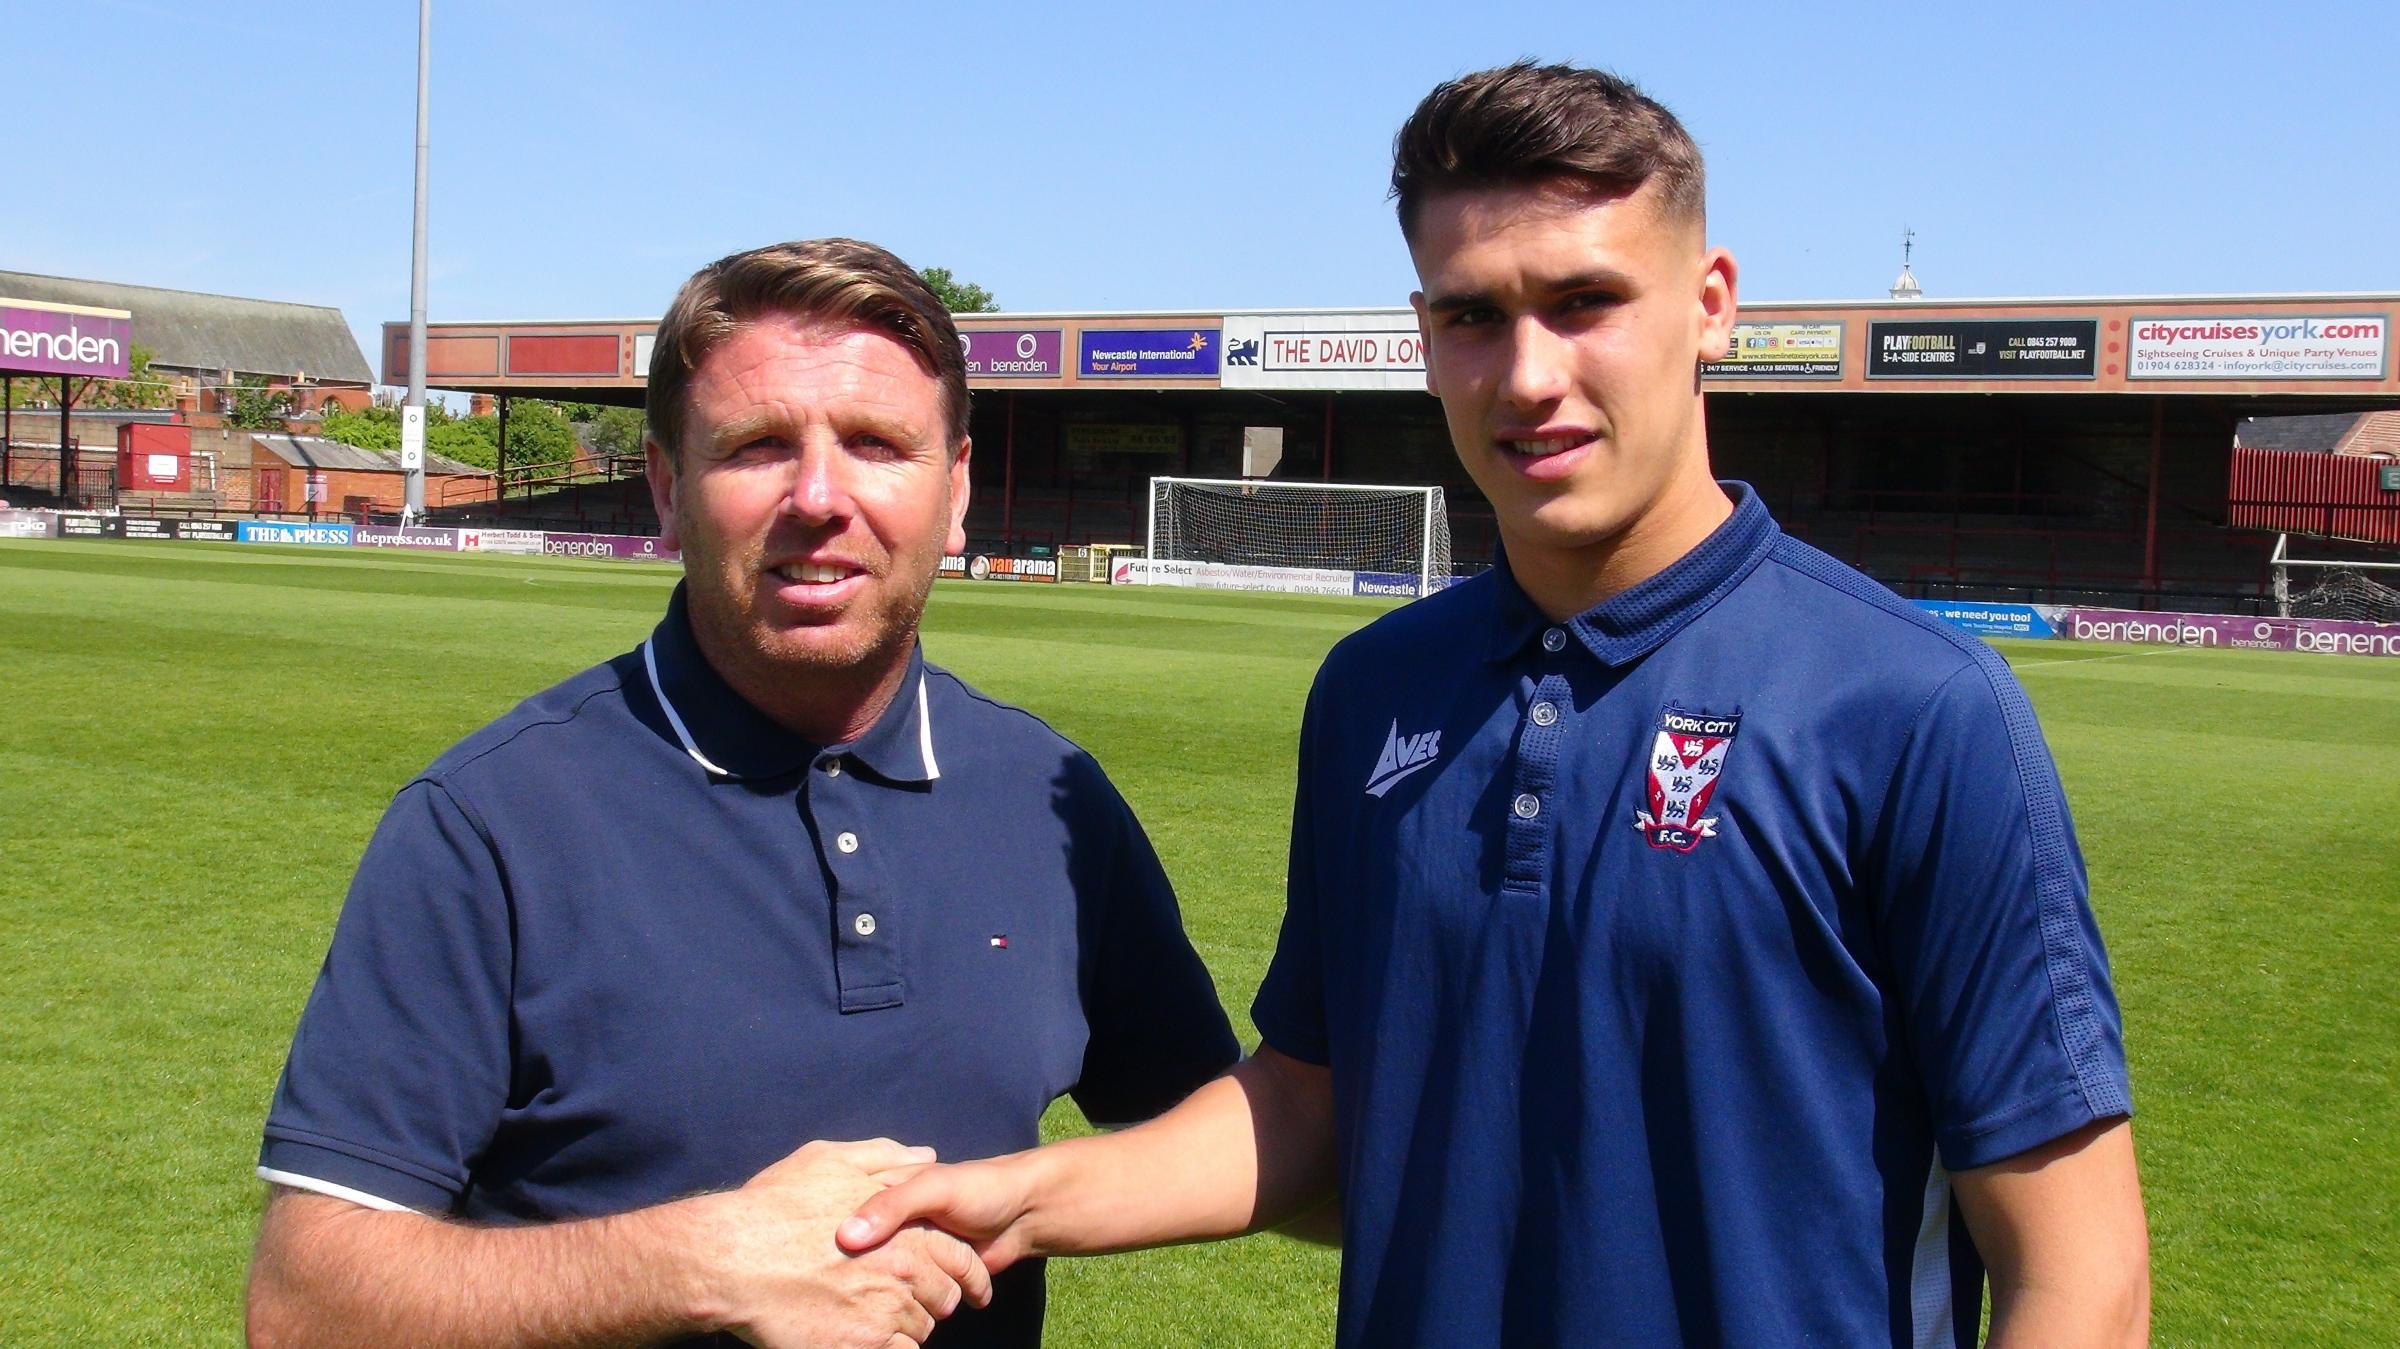 York City manager Martin Gray, left, welcomes centre-back Josh Rogerson to the professional ranks. Picture: Ian Appleyard/YCFC